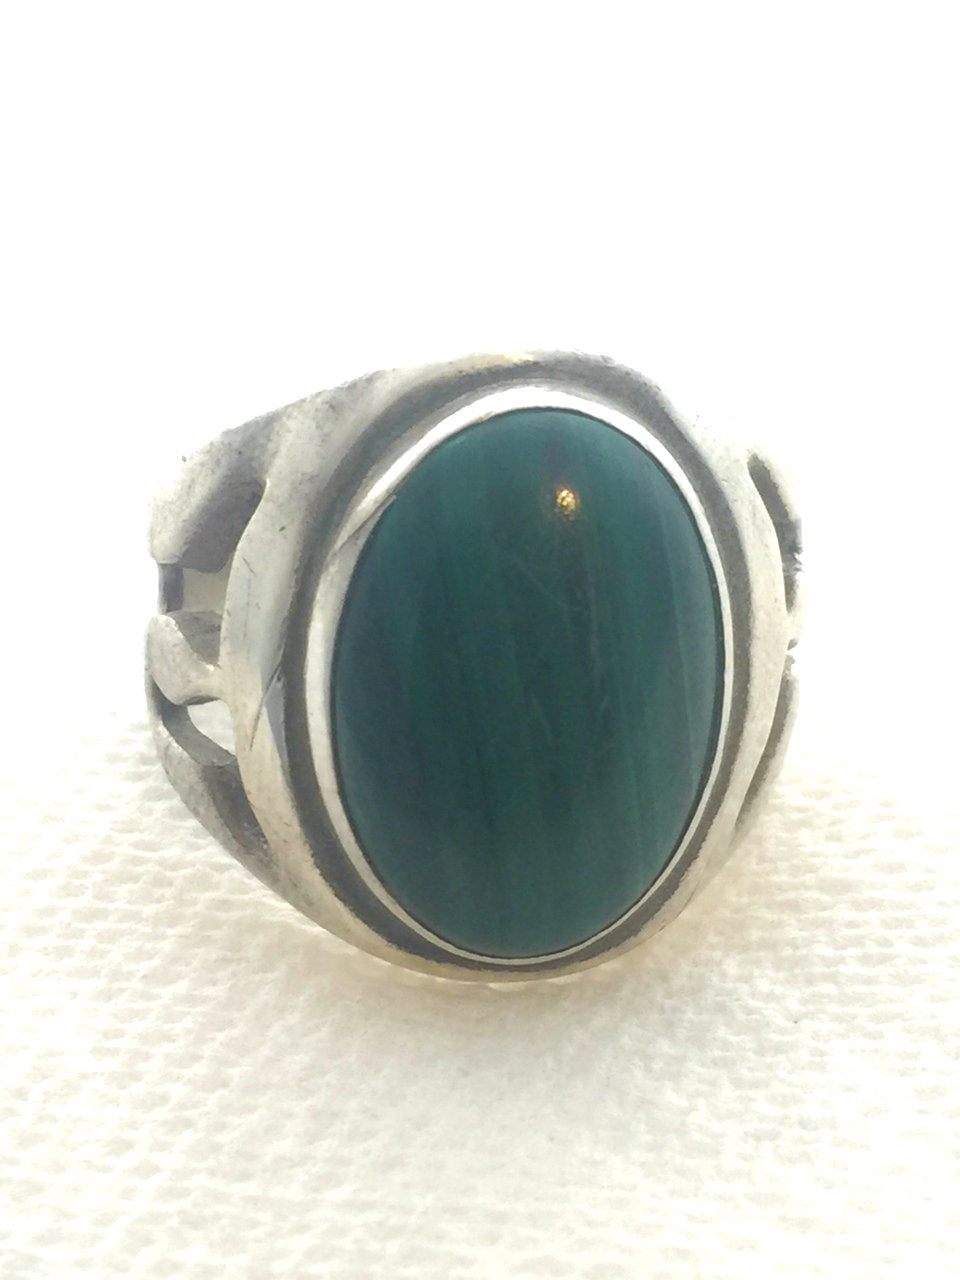 Vintage silver and malachite ring.